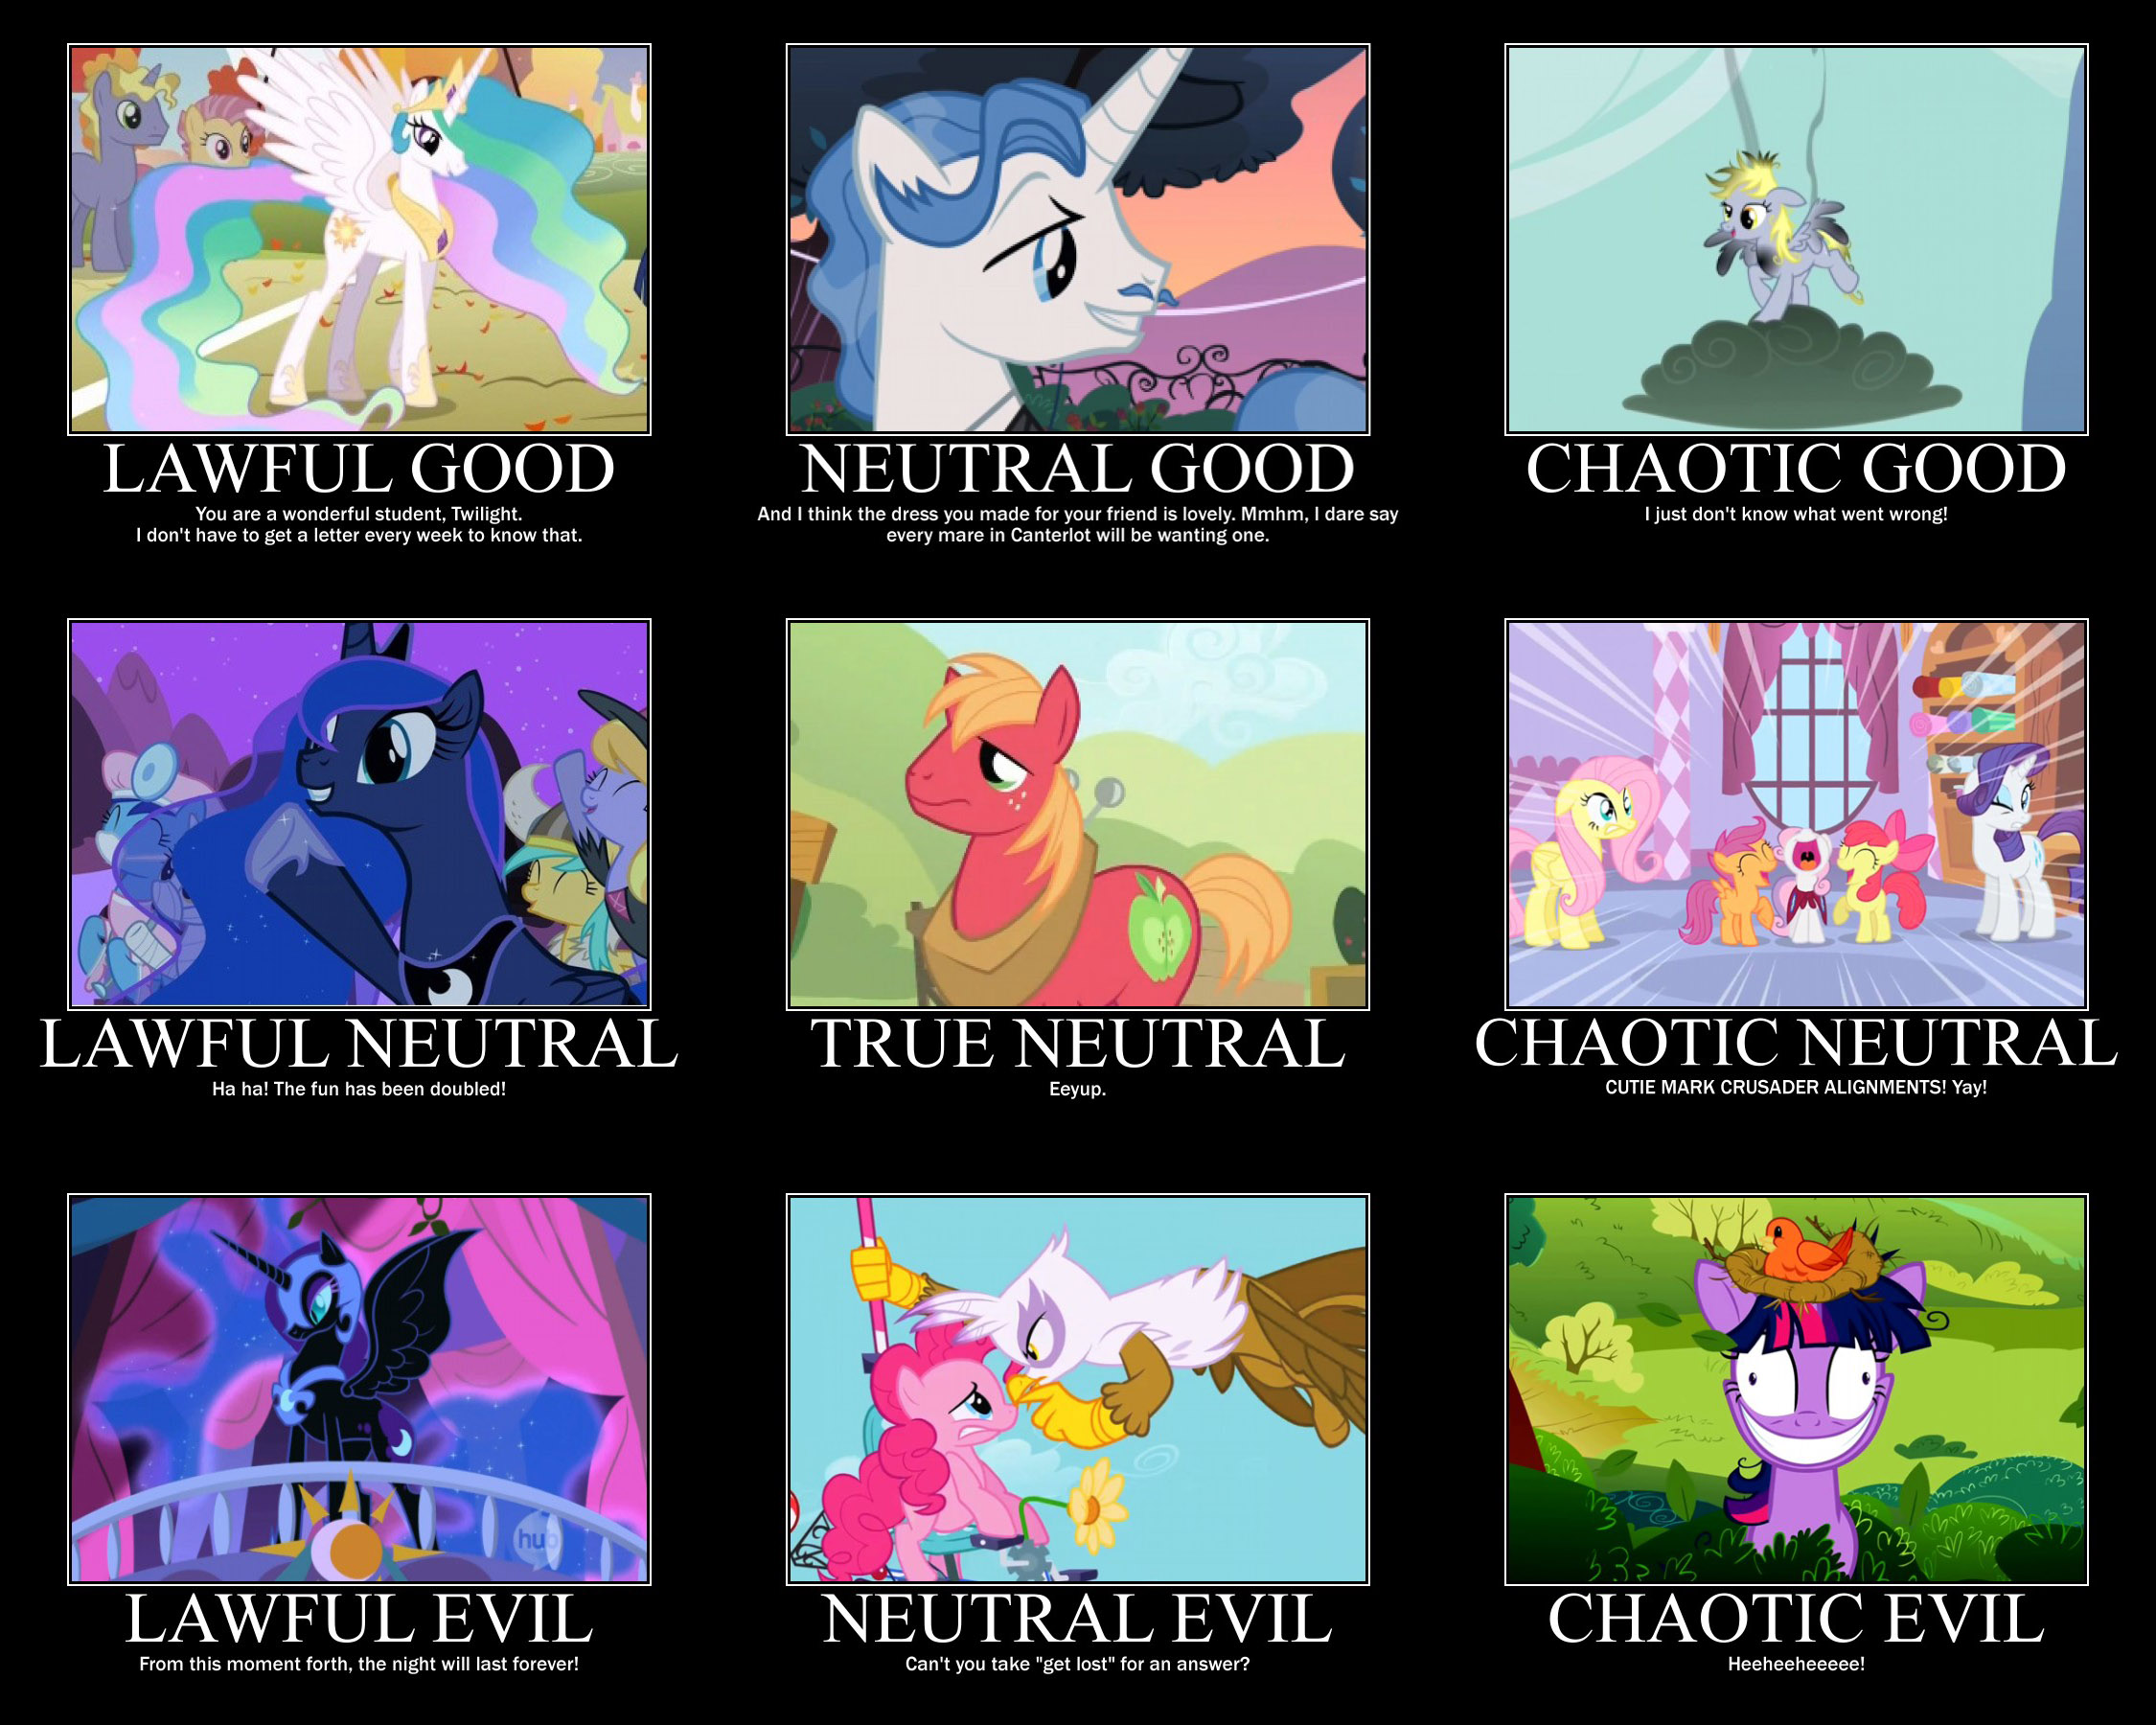 Image - 285998] | My Little Pony: Friendship is Magic | Know Your Meme